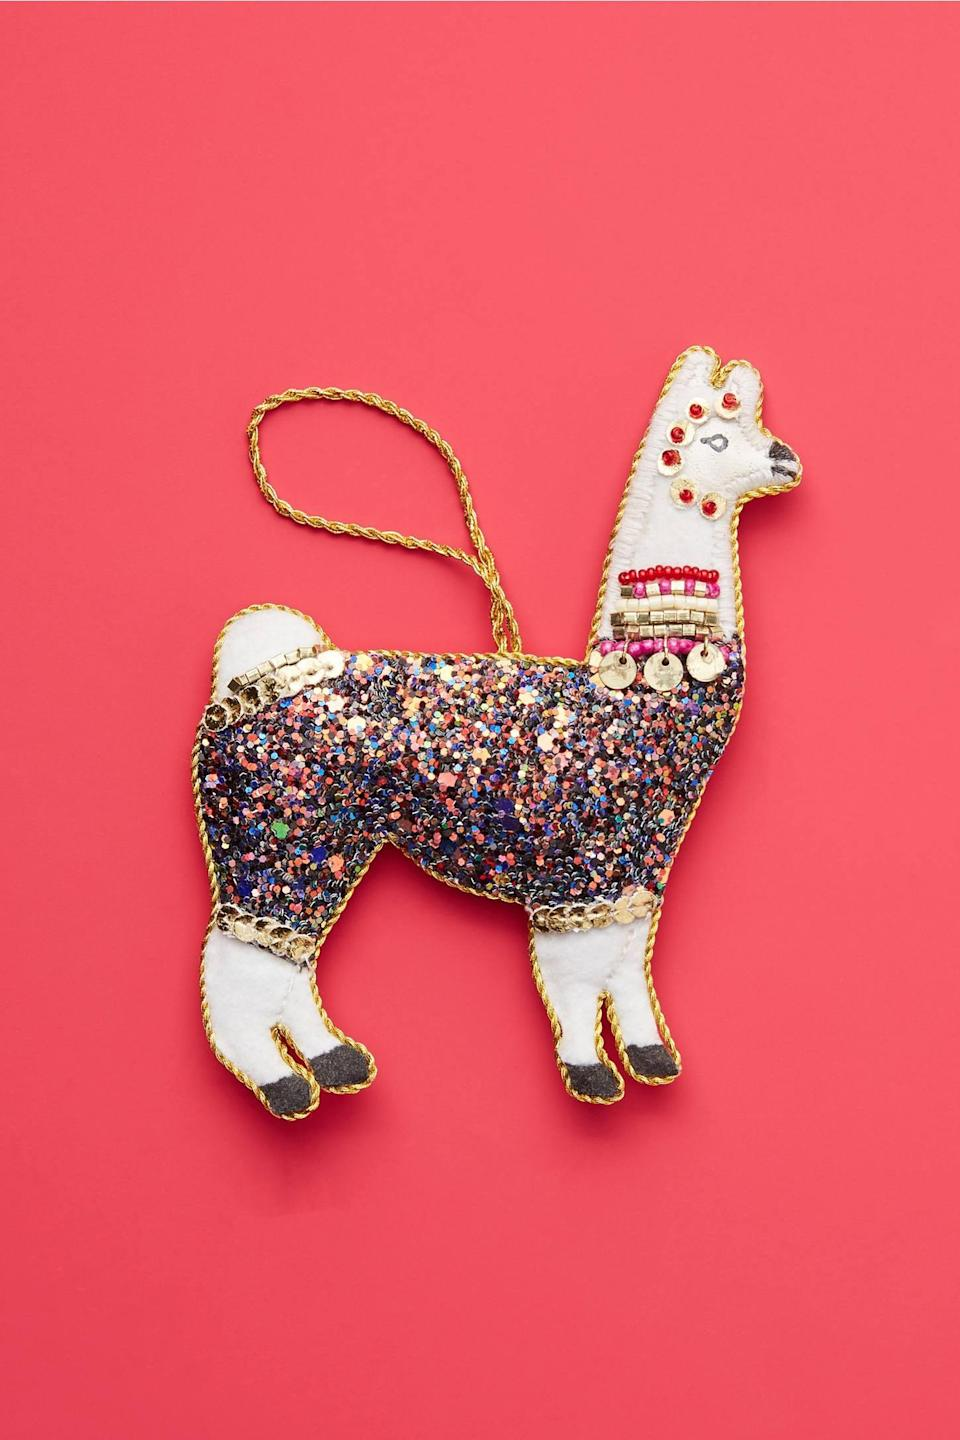 """<p>Give your tree a bit of glitz and glam with the <a href=""""https://www.popsugar.com/buy/Triangle-Bears-Glitter-Llama-Ornament-490437?p_name=Triangle%20of%20Bears%20Glitter%20Llama%20Ornament&retailer=anthropologie.com&pid=490437&price=16&evar1=casa%3Aus&evar9=46615300&evar98=https%3A%2F%2Fwww.popsugar.com%2Fhome%2Fphoto-gallery%2F46615300%2Fimage%2F46615306%2FTriangle-Bears-Glitter-Llama-Ornament&list1=shopping%2Canthropologie%2Choliday%2Cchristmas%2Cchristmas%20decorations%2Choliday%20decor%2Chome%20shopping&prop13=mobile&pdata=1"""" rel=""""nofollow noopener"""" class=""""link rapid-noclick-resp"""" target=""""_blank"""" data-ylk=""""slk:Triangle of Bears Glitter Llama Ornament"""">Triangle of Bears Glitter Llama Ornament</a> ($16).</p>"""